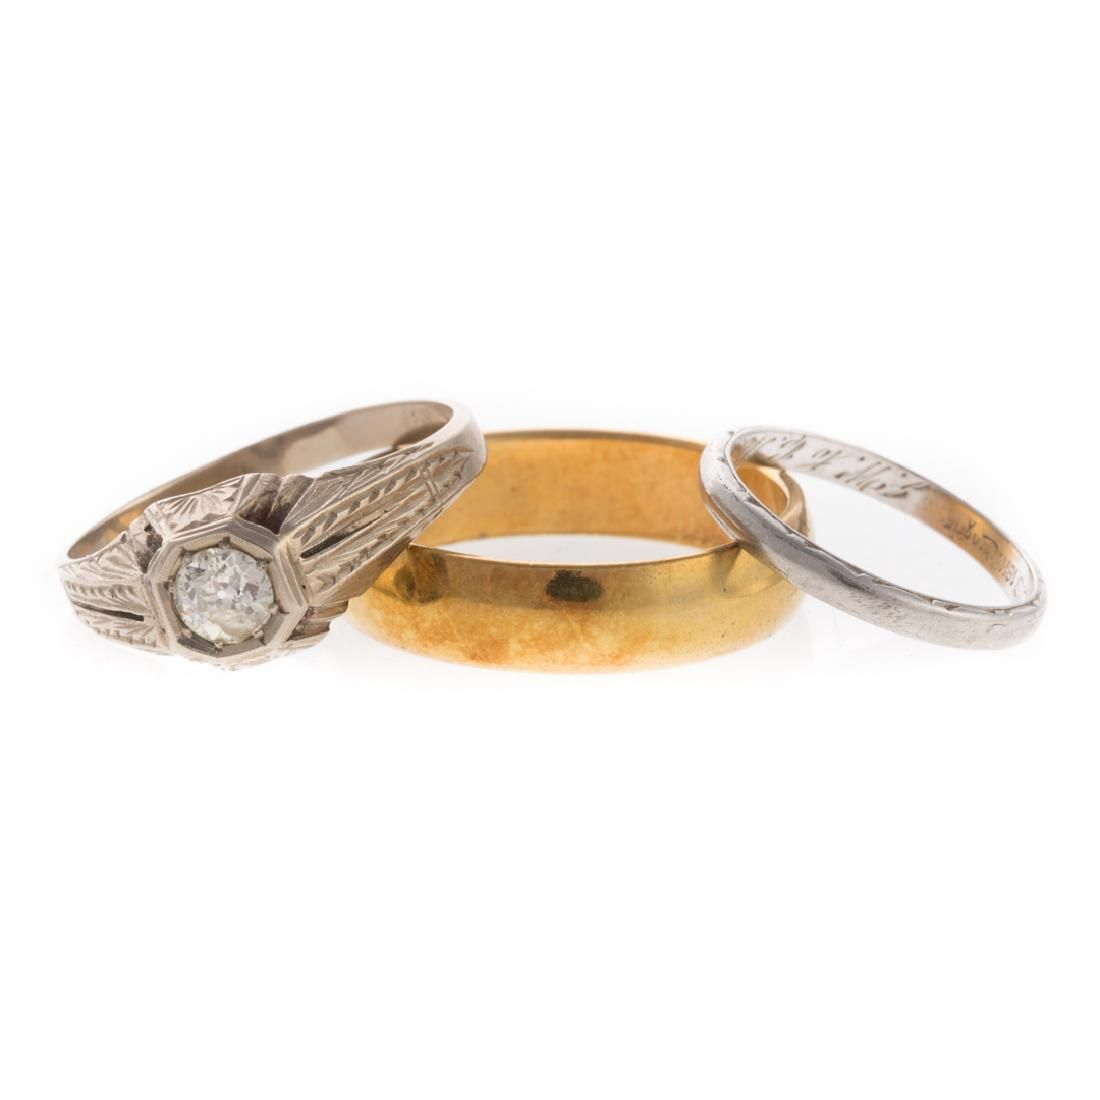 A Vintage Diamond Ring & Two 18K Gold Bands